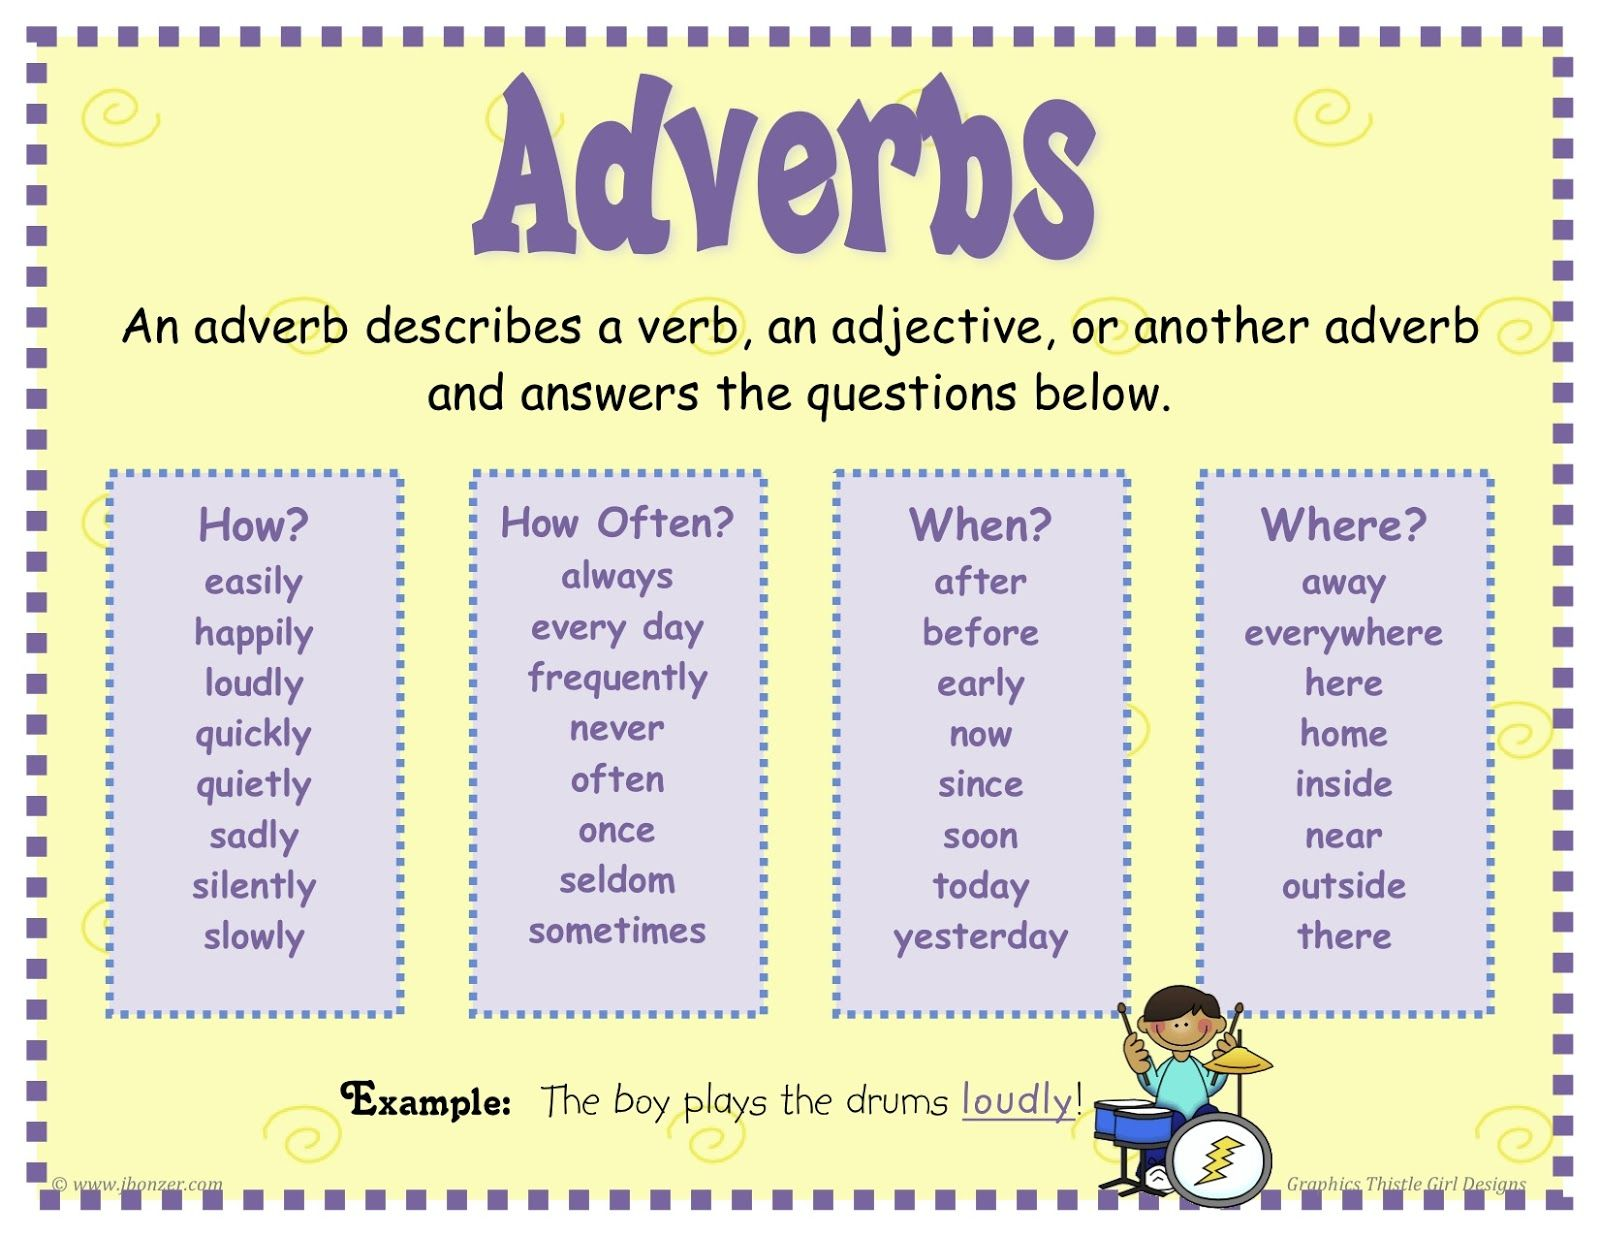 Adverb definition uses and exercises tutorial de idiomas english grammar adverb definition uses and exercises tutorial de idiomas tutorial and skill baditri Choice Image